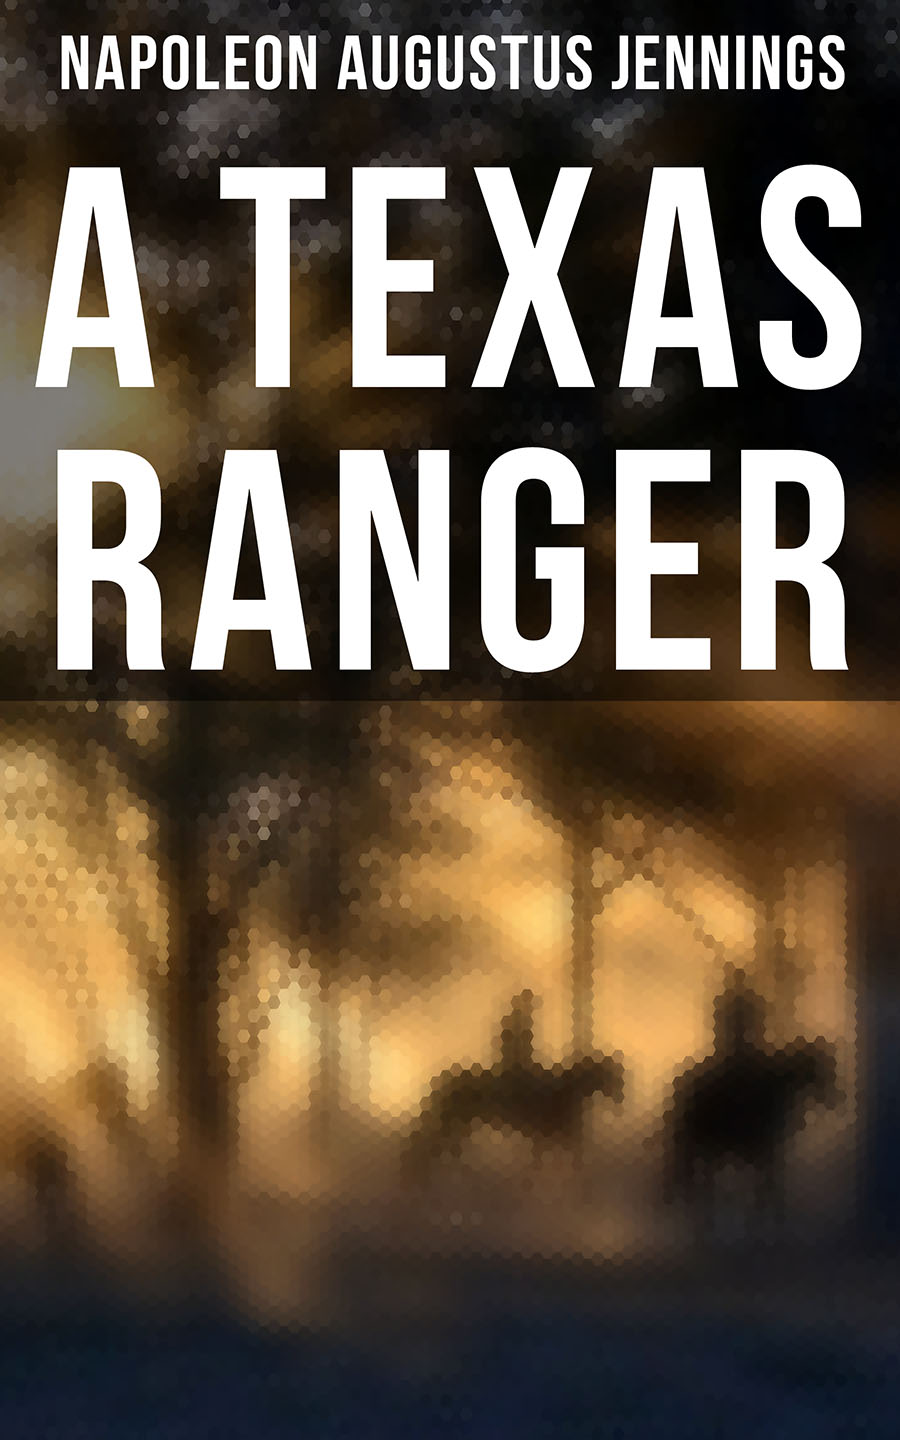 Napoleon Augustus Jennings A TEXAS RANGER: True Story of the Leander H. Mcnelly's Texas Ranger Company in the Wild Horse Desert texas true